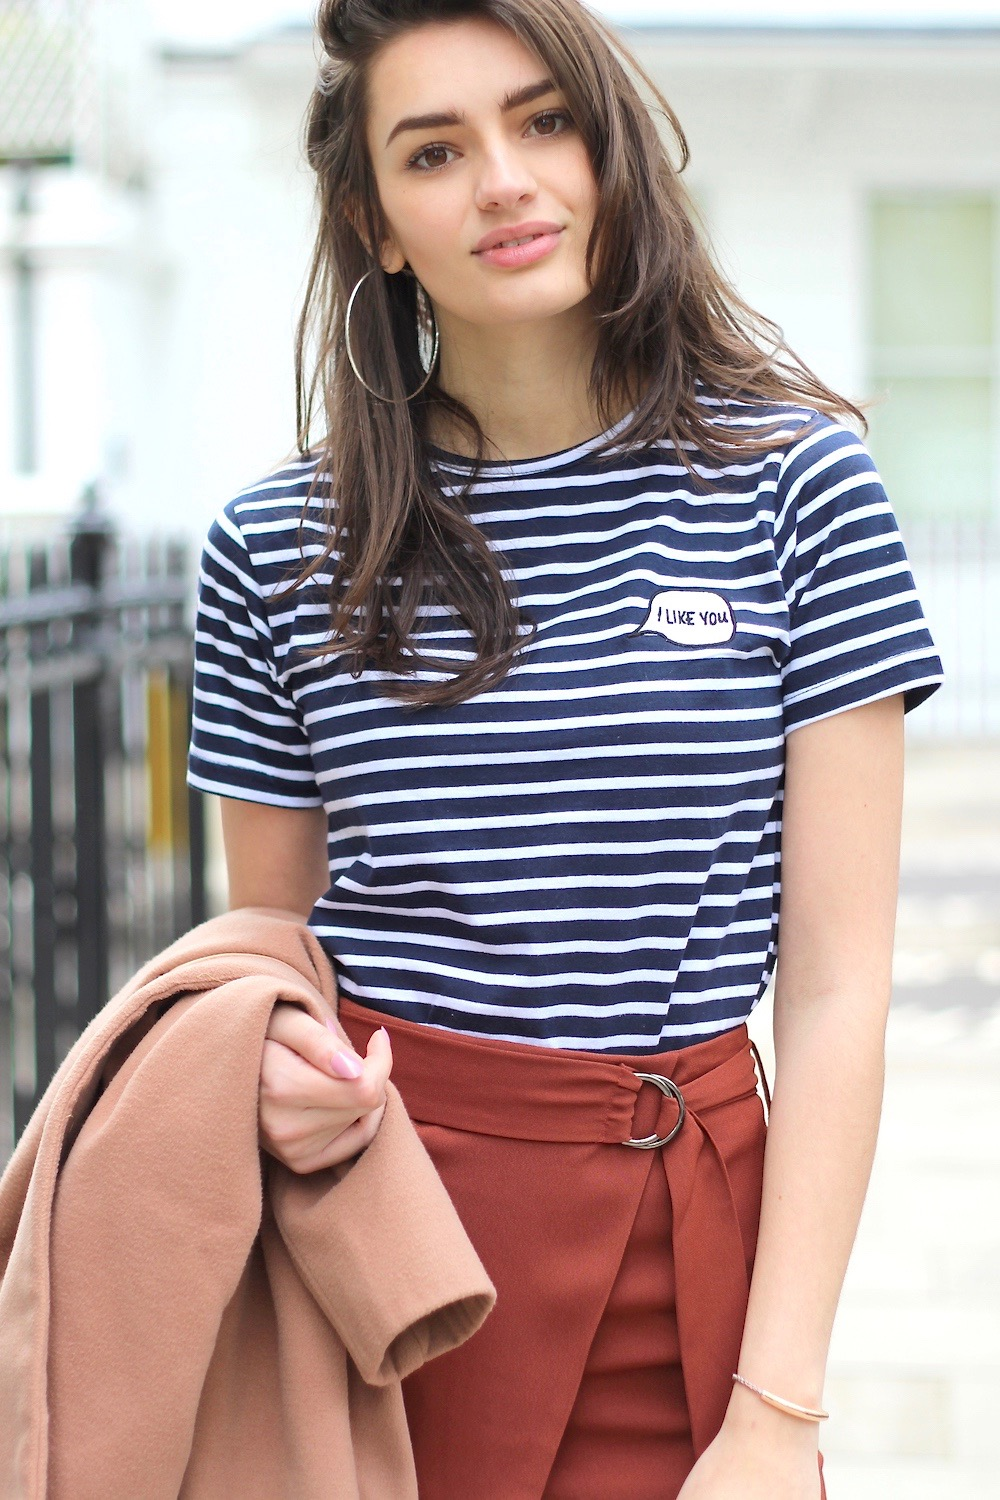 personal style blog peexo london uk